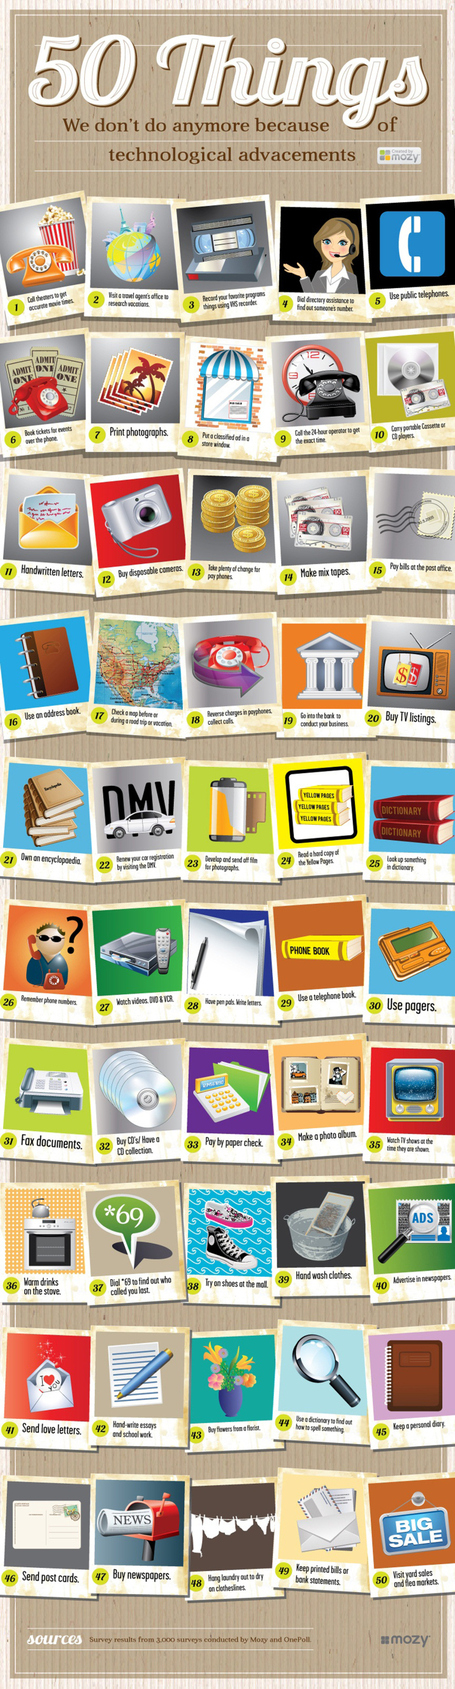 50 Things We No Longer Do Because Of Tech Advancements [Infographic] | Teaching with 1:1 Technology | Scoop.it